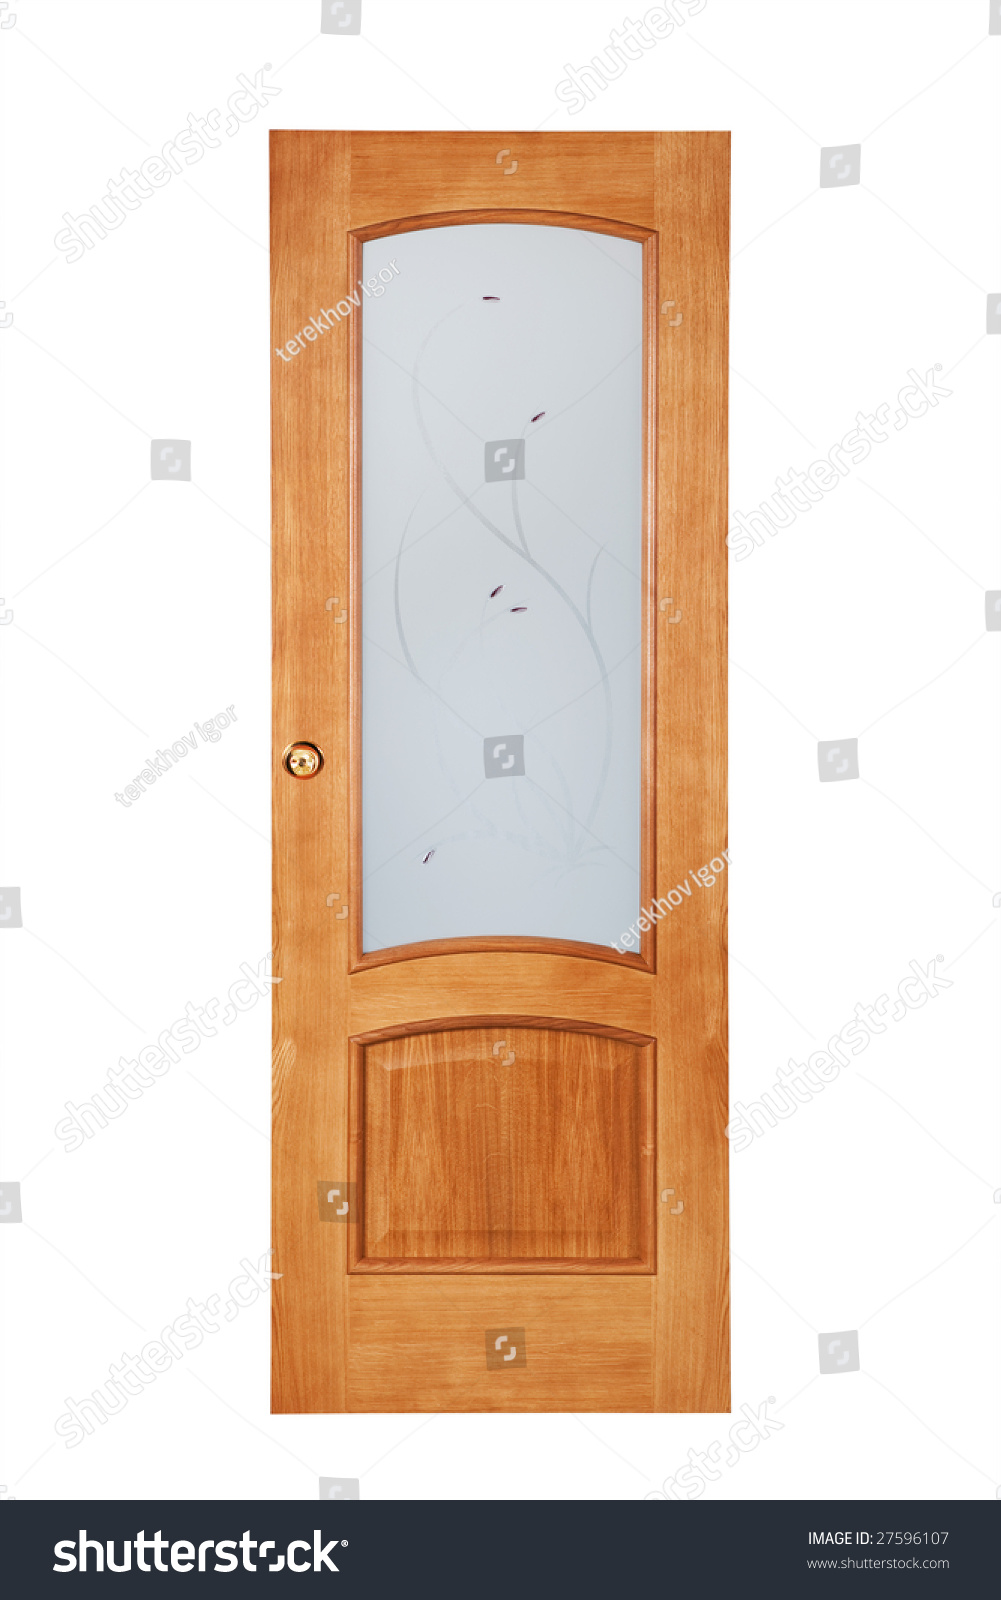 Beautiful wooden door on a white background stock photo for Beautiful wooden doors picture collection